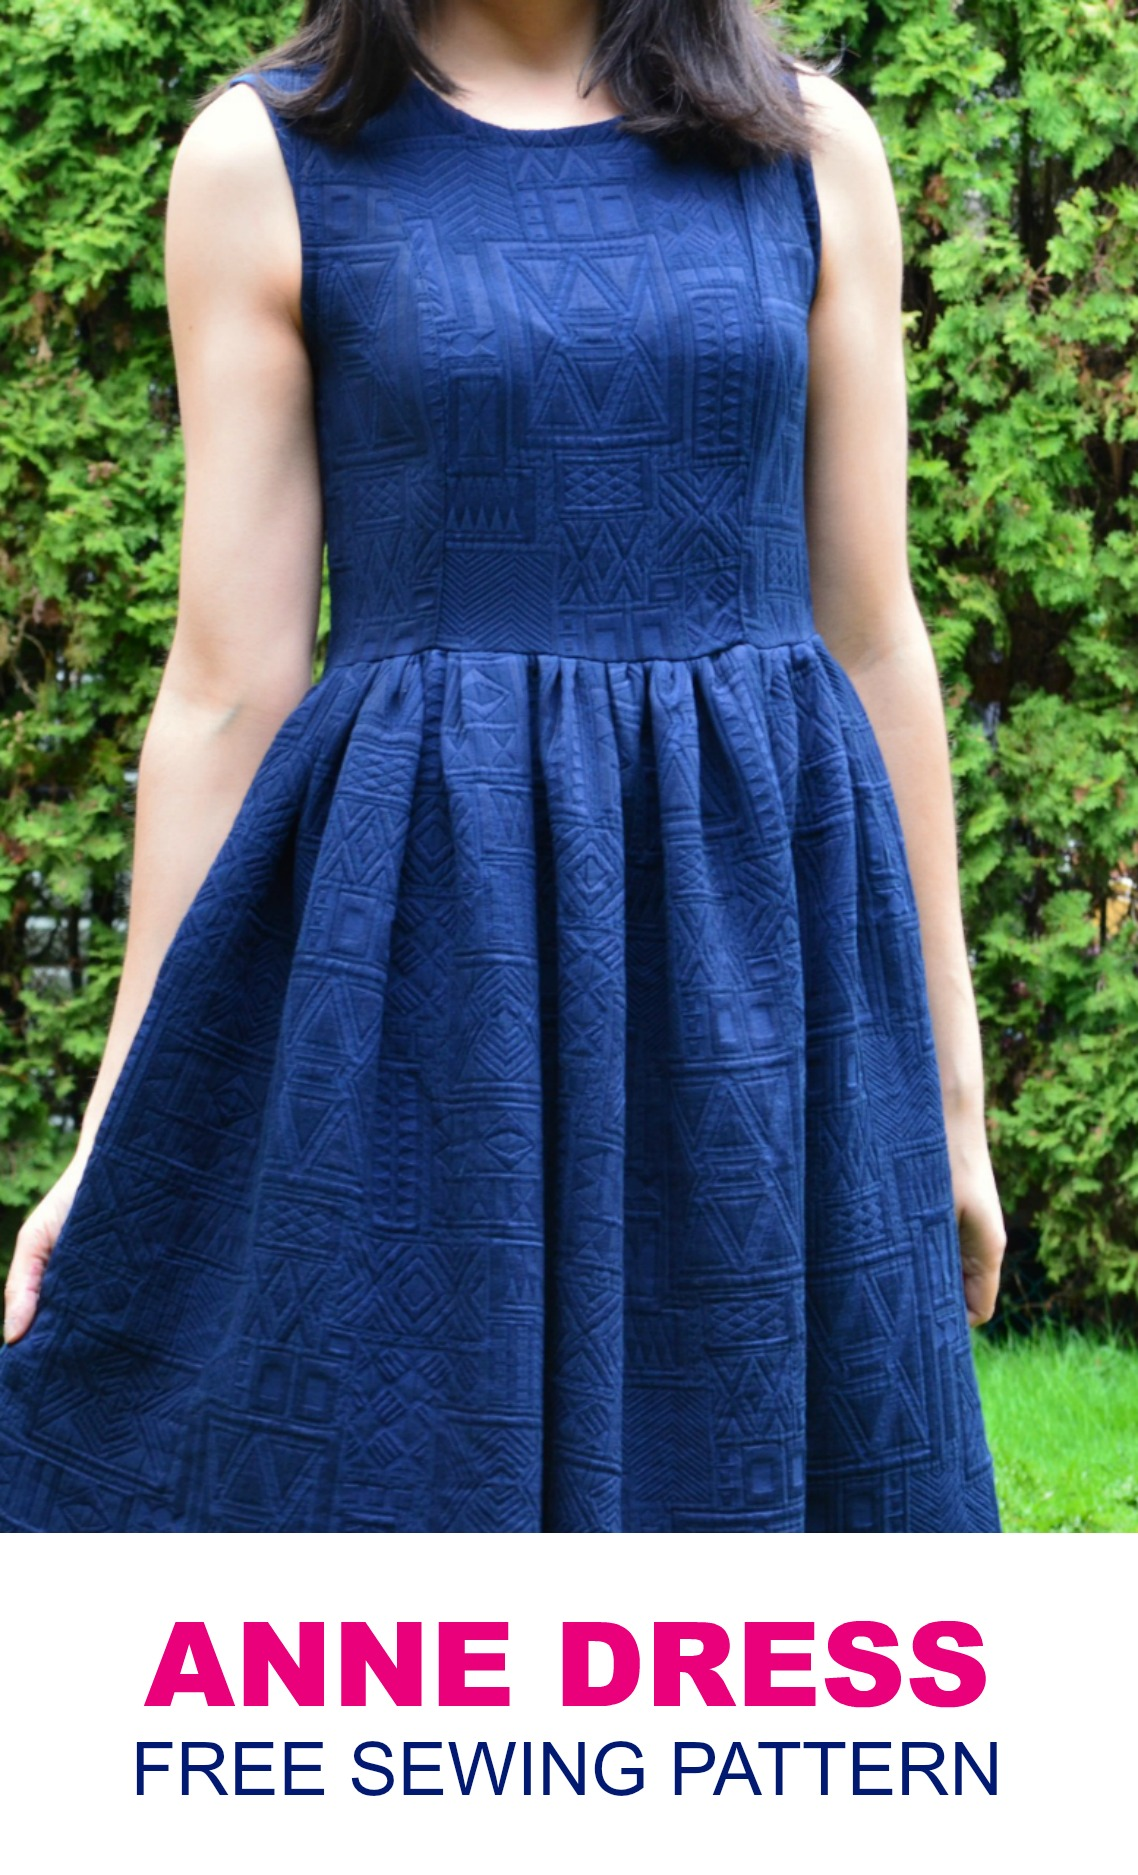 SEWING TUTORIAL: how to make the Anne dress Pattern